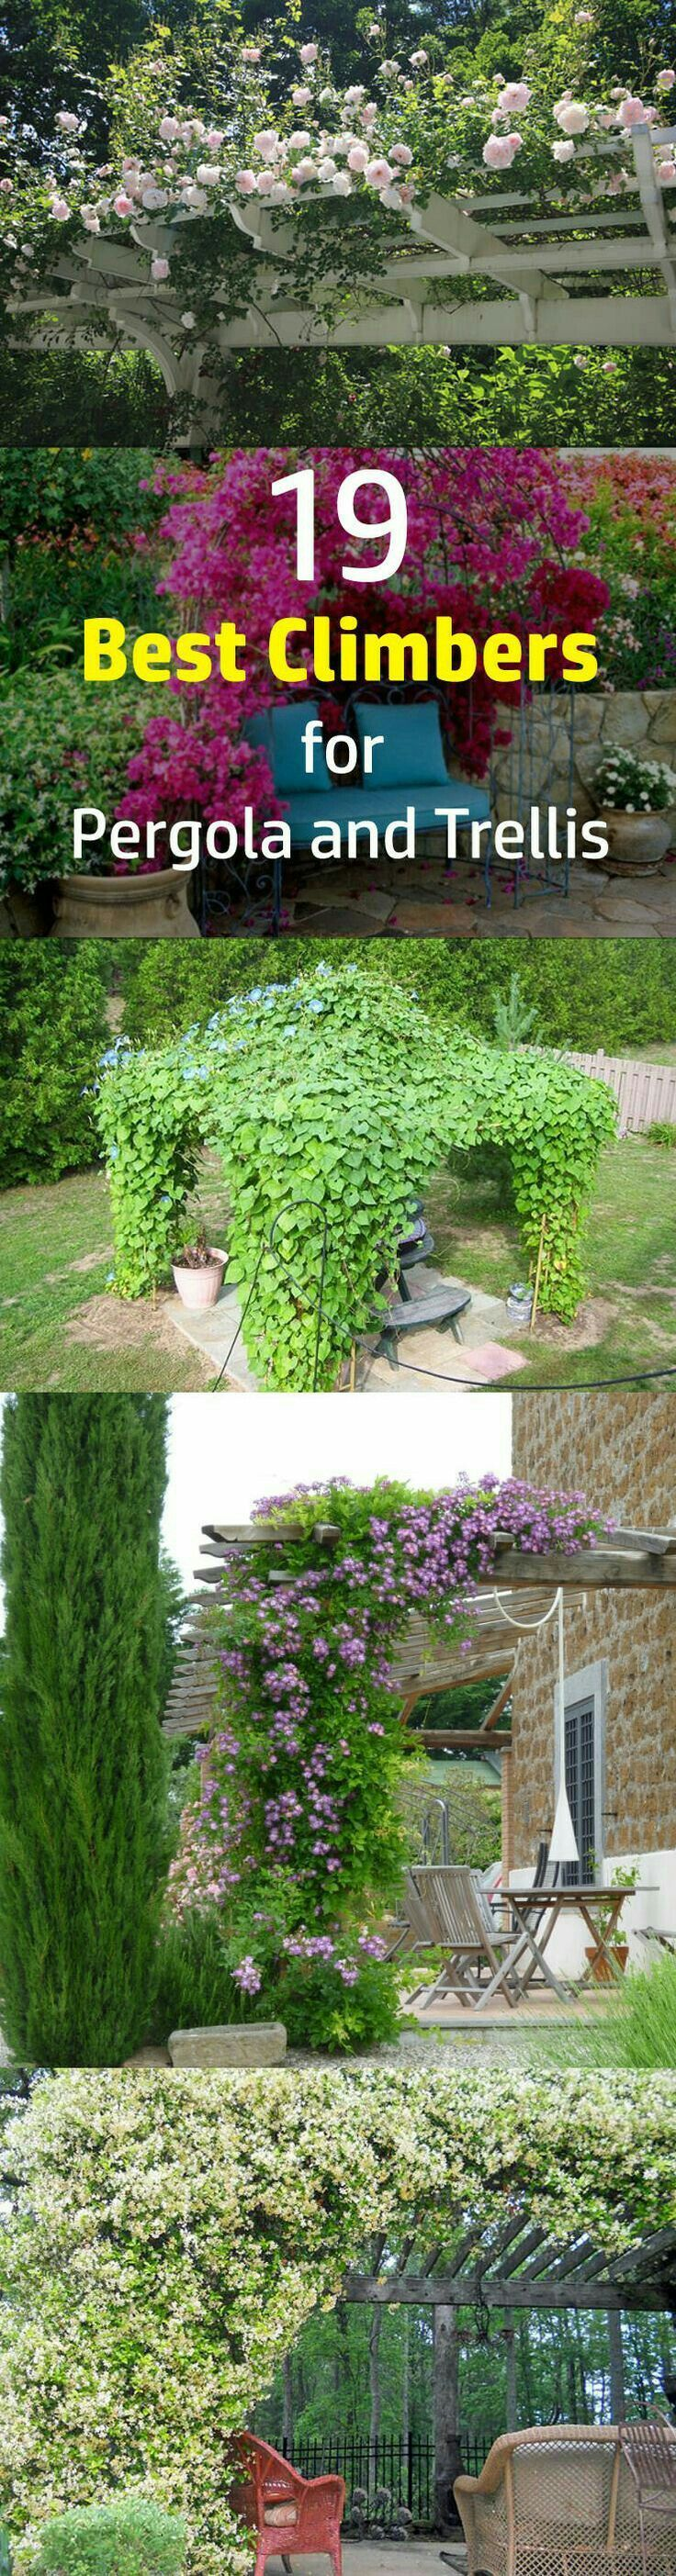 House garden pictures - 19 Best Climbing Plants For Pergolas And Trellises